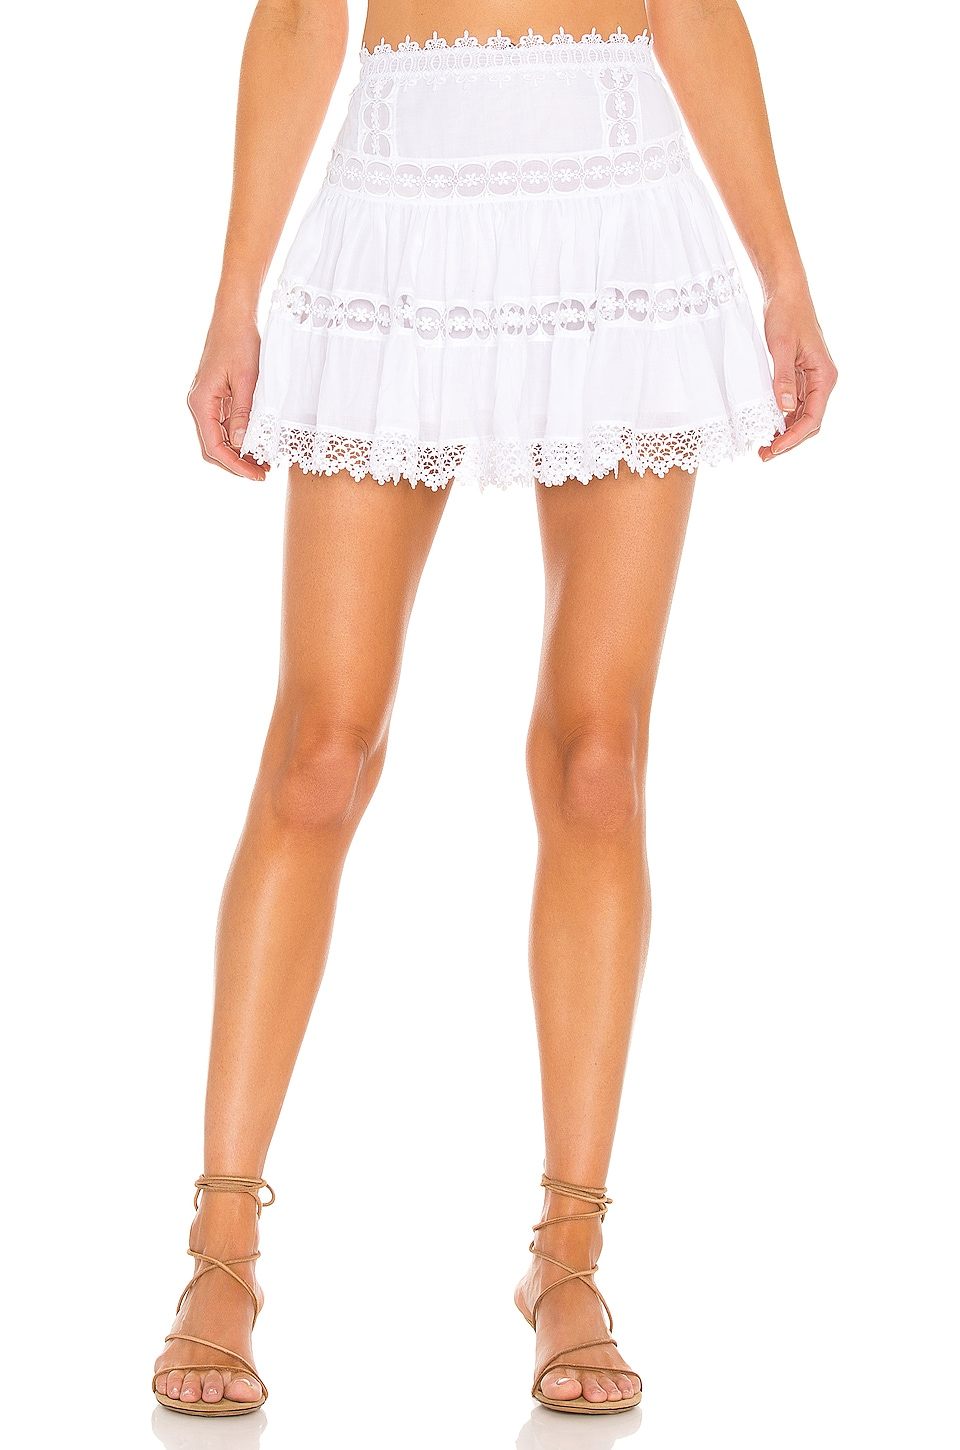 Charo Ruiz Ibiza Greta Skirt in White